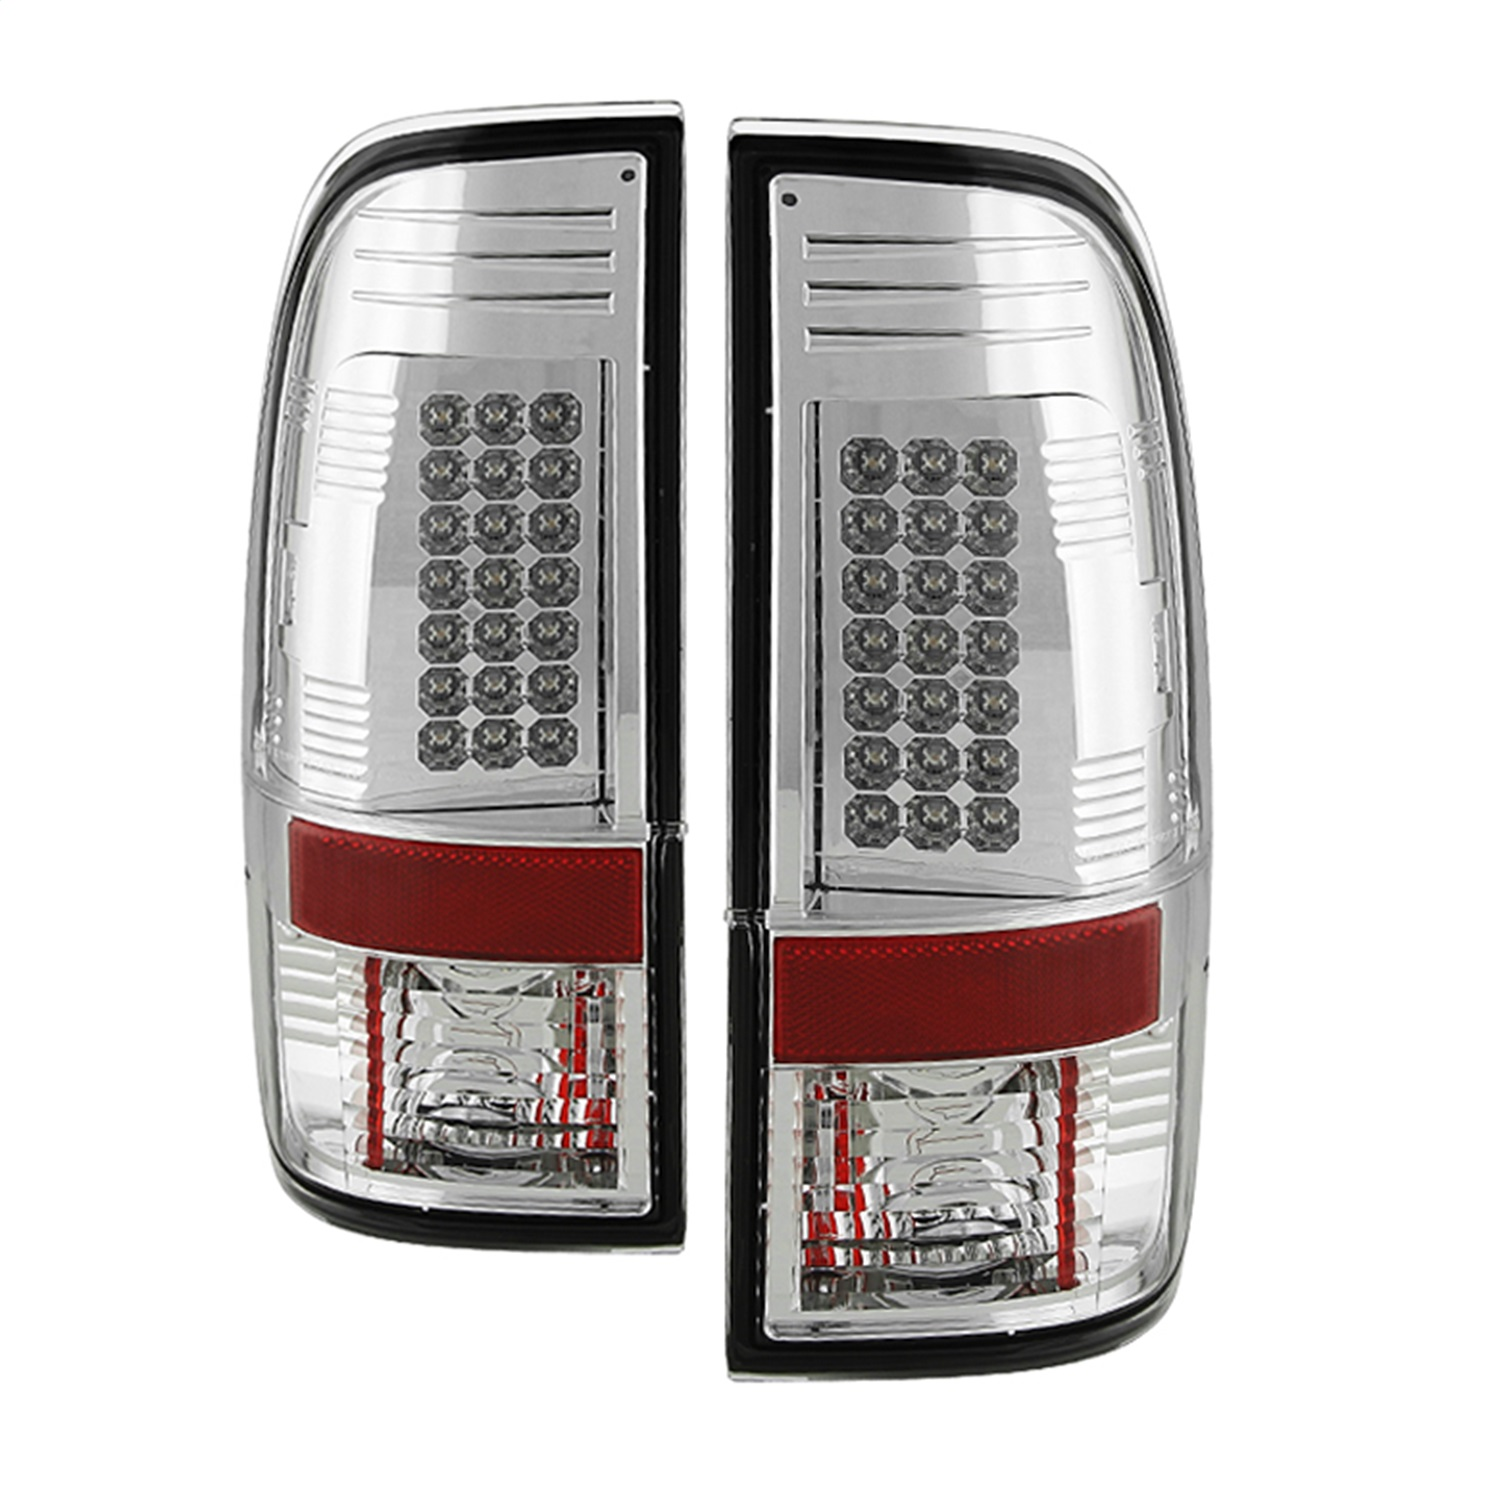 Spyder Auto 5003904 LED Tail Lights